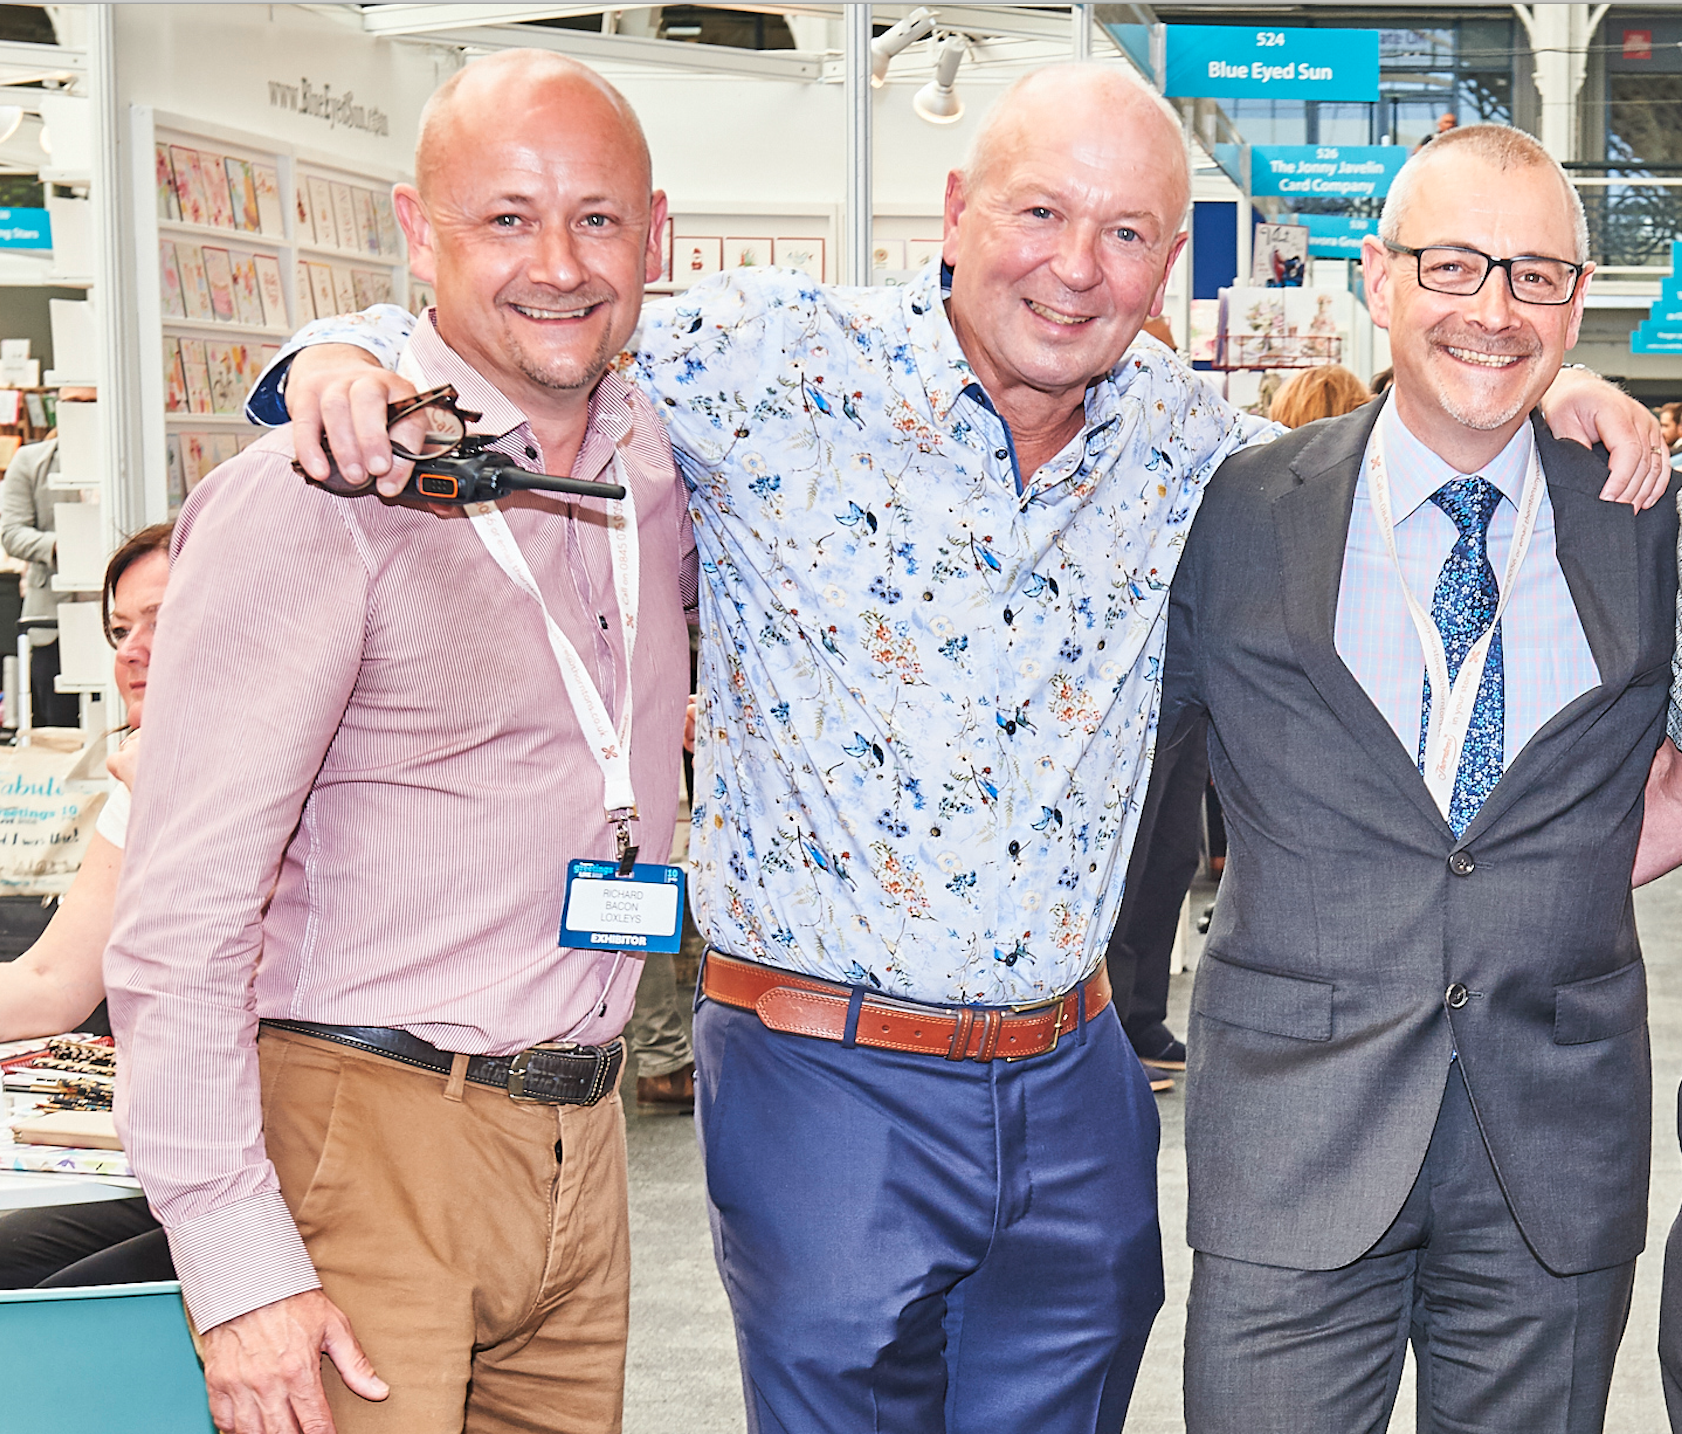 Above: The Sherwood Group's managing director Richard Bacon (left) and ceo Jeremy Bacon (right) with PG's Warren Lomax at last June's PG Live exhibition.